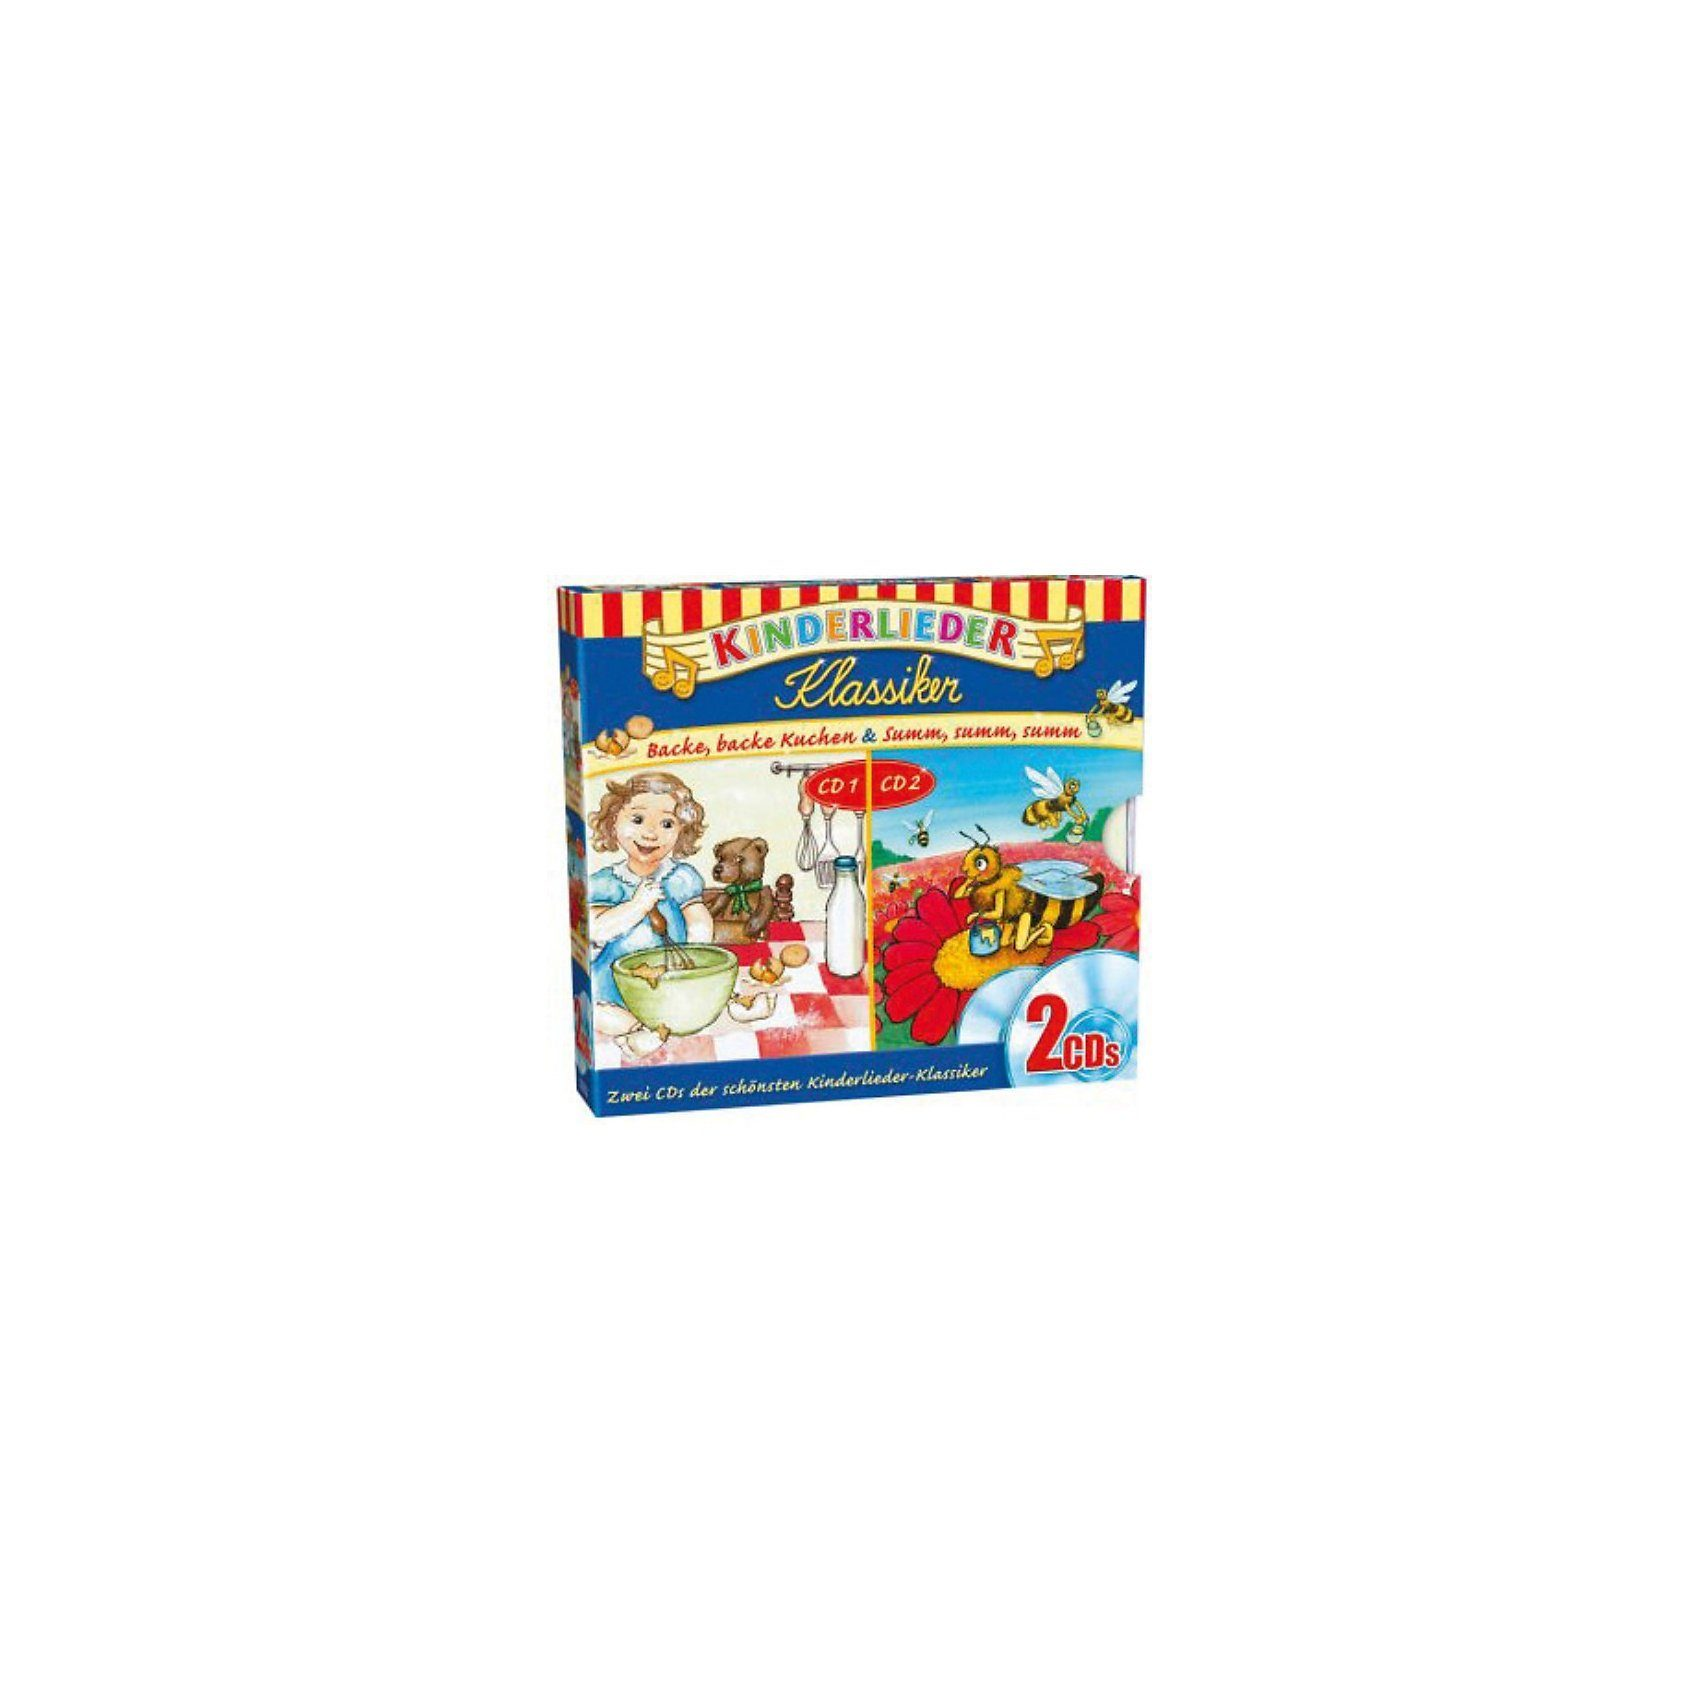 Kiddinx CD Kinderlieder - Klassiker 2er Box 01 Backe, backe Kuchen +